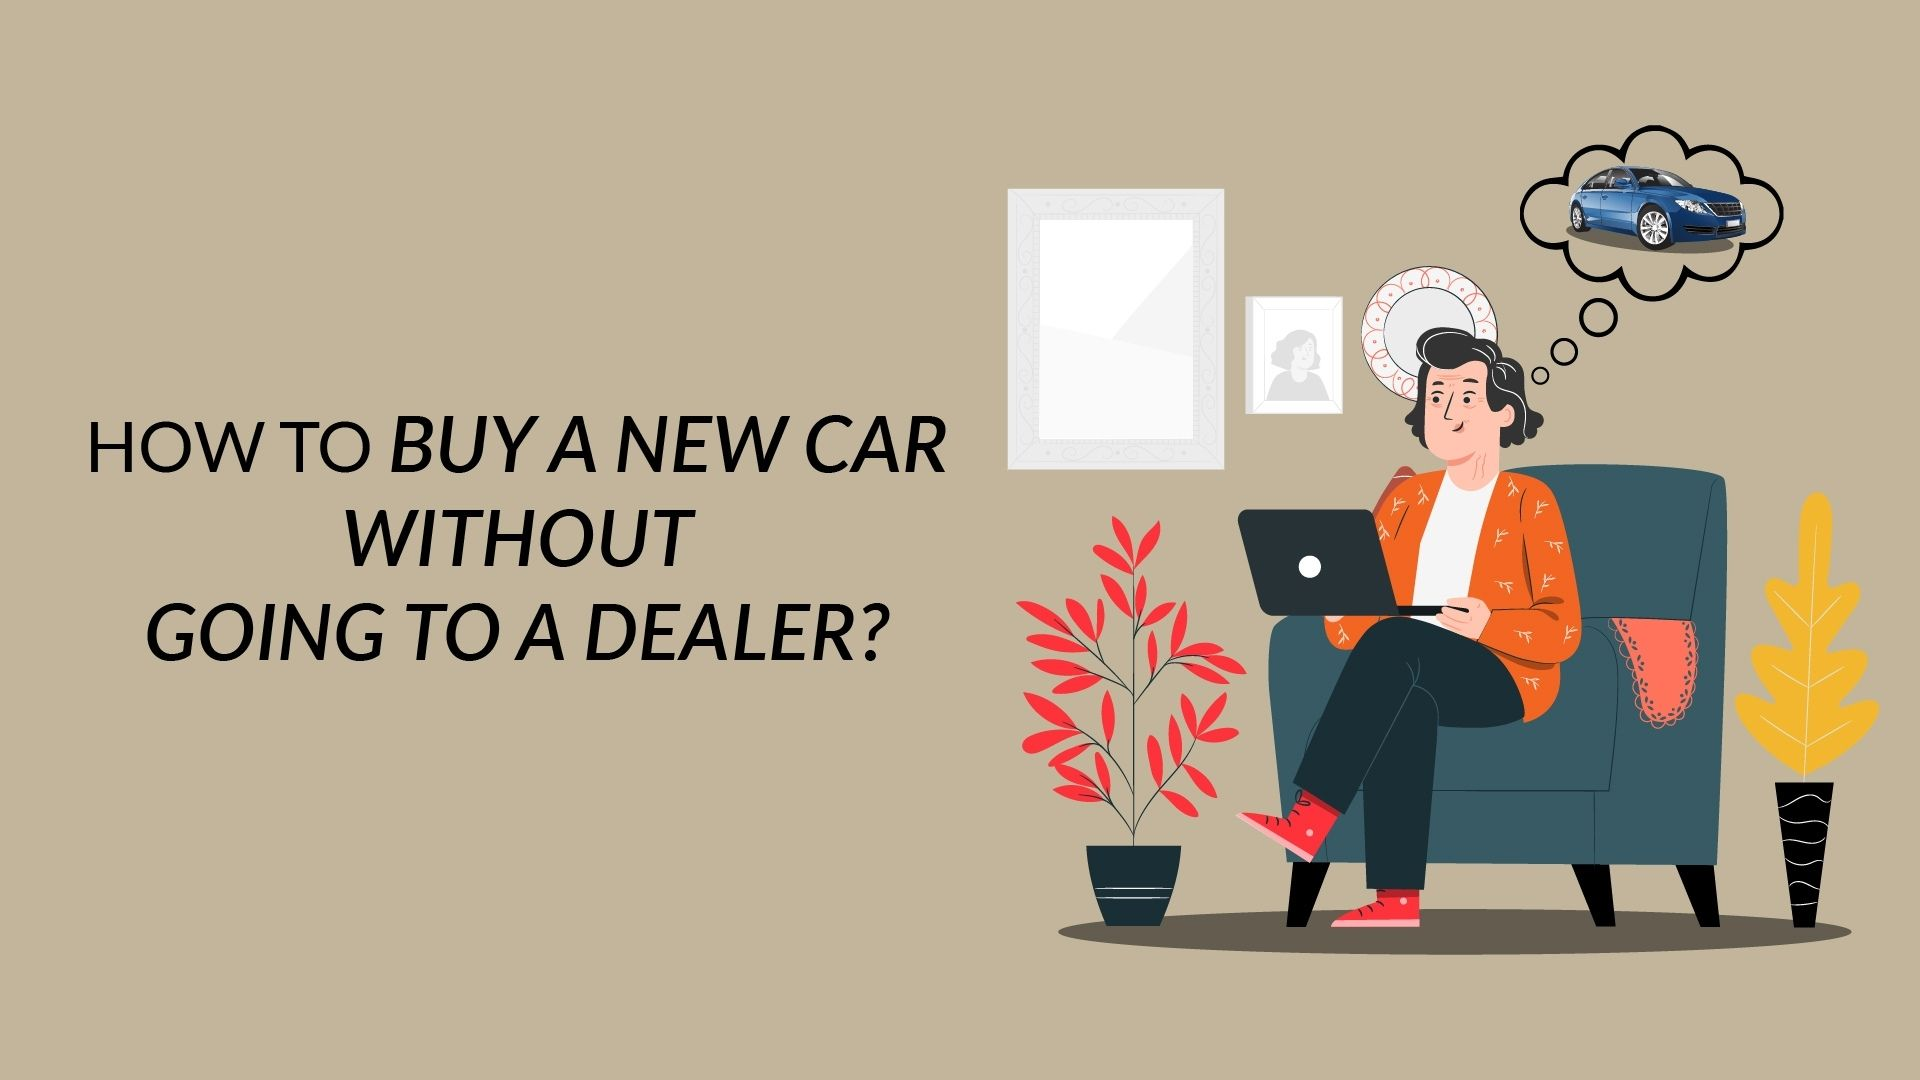 How to Buy a New Car Without Going to the Dealer